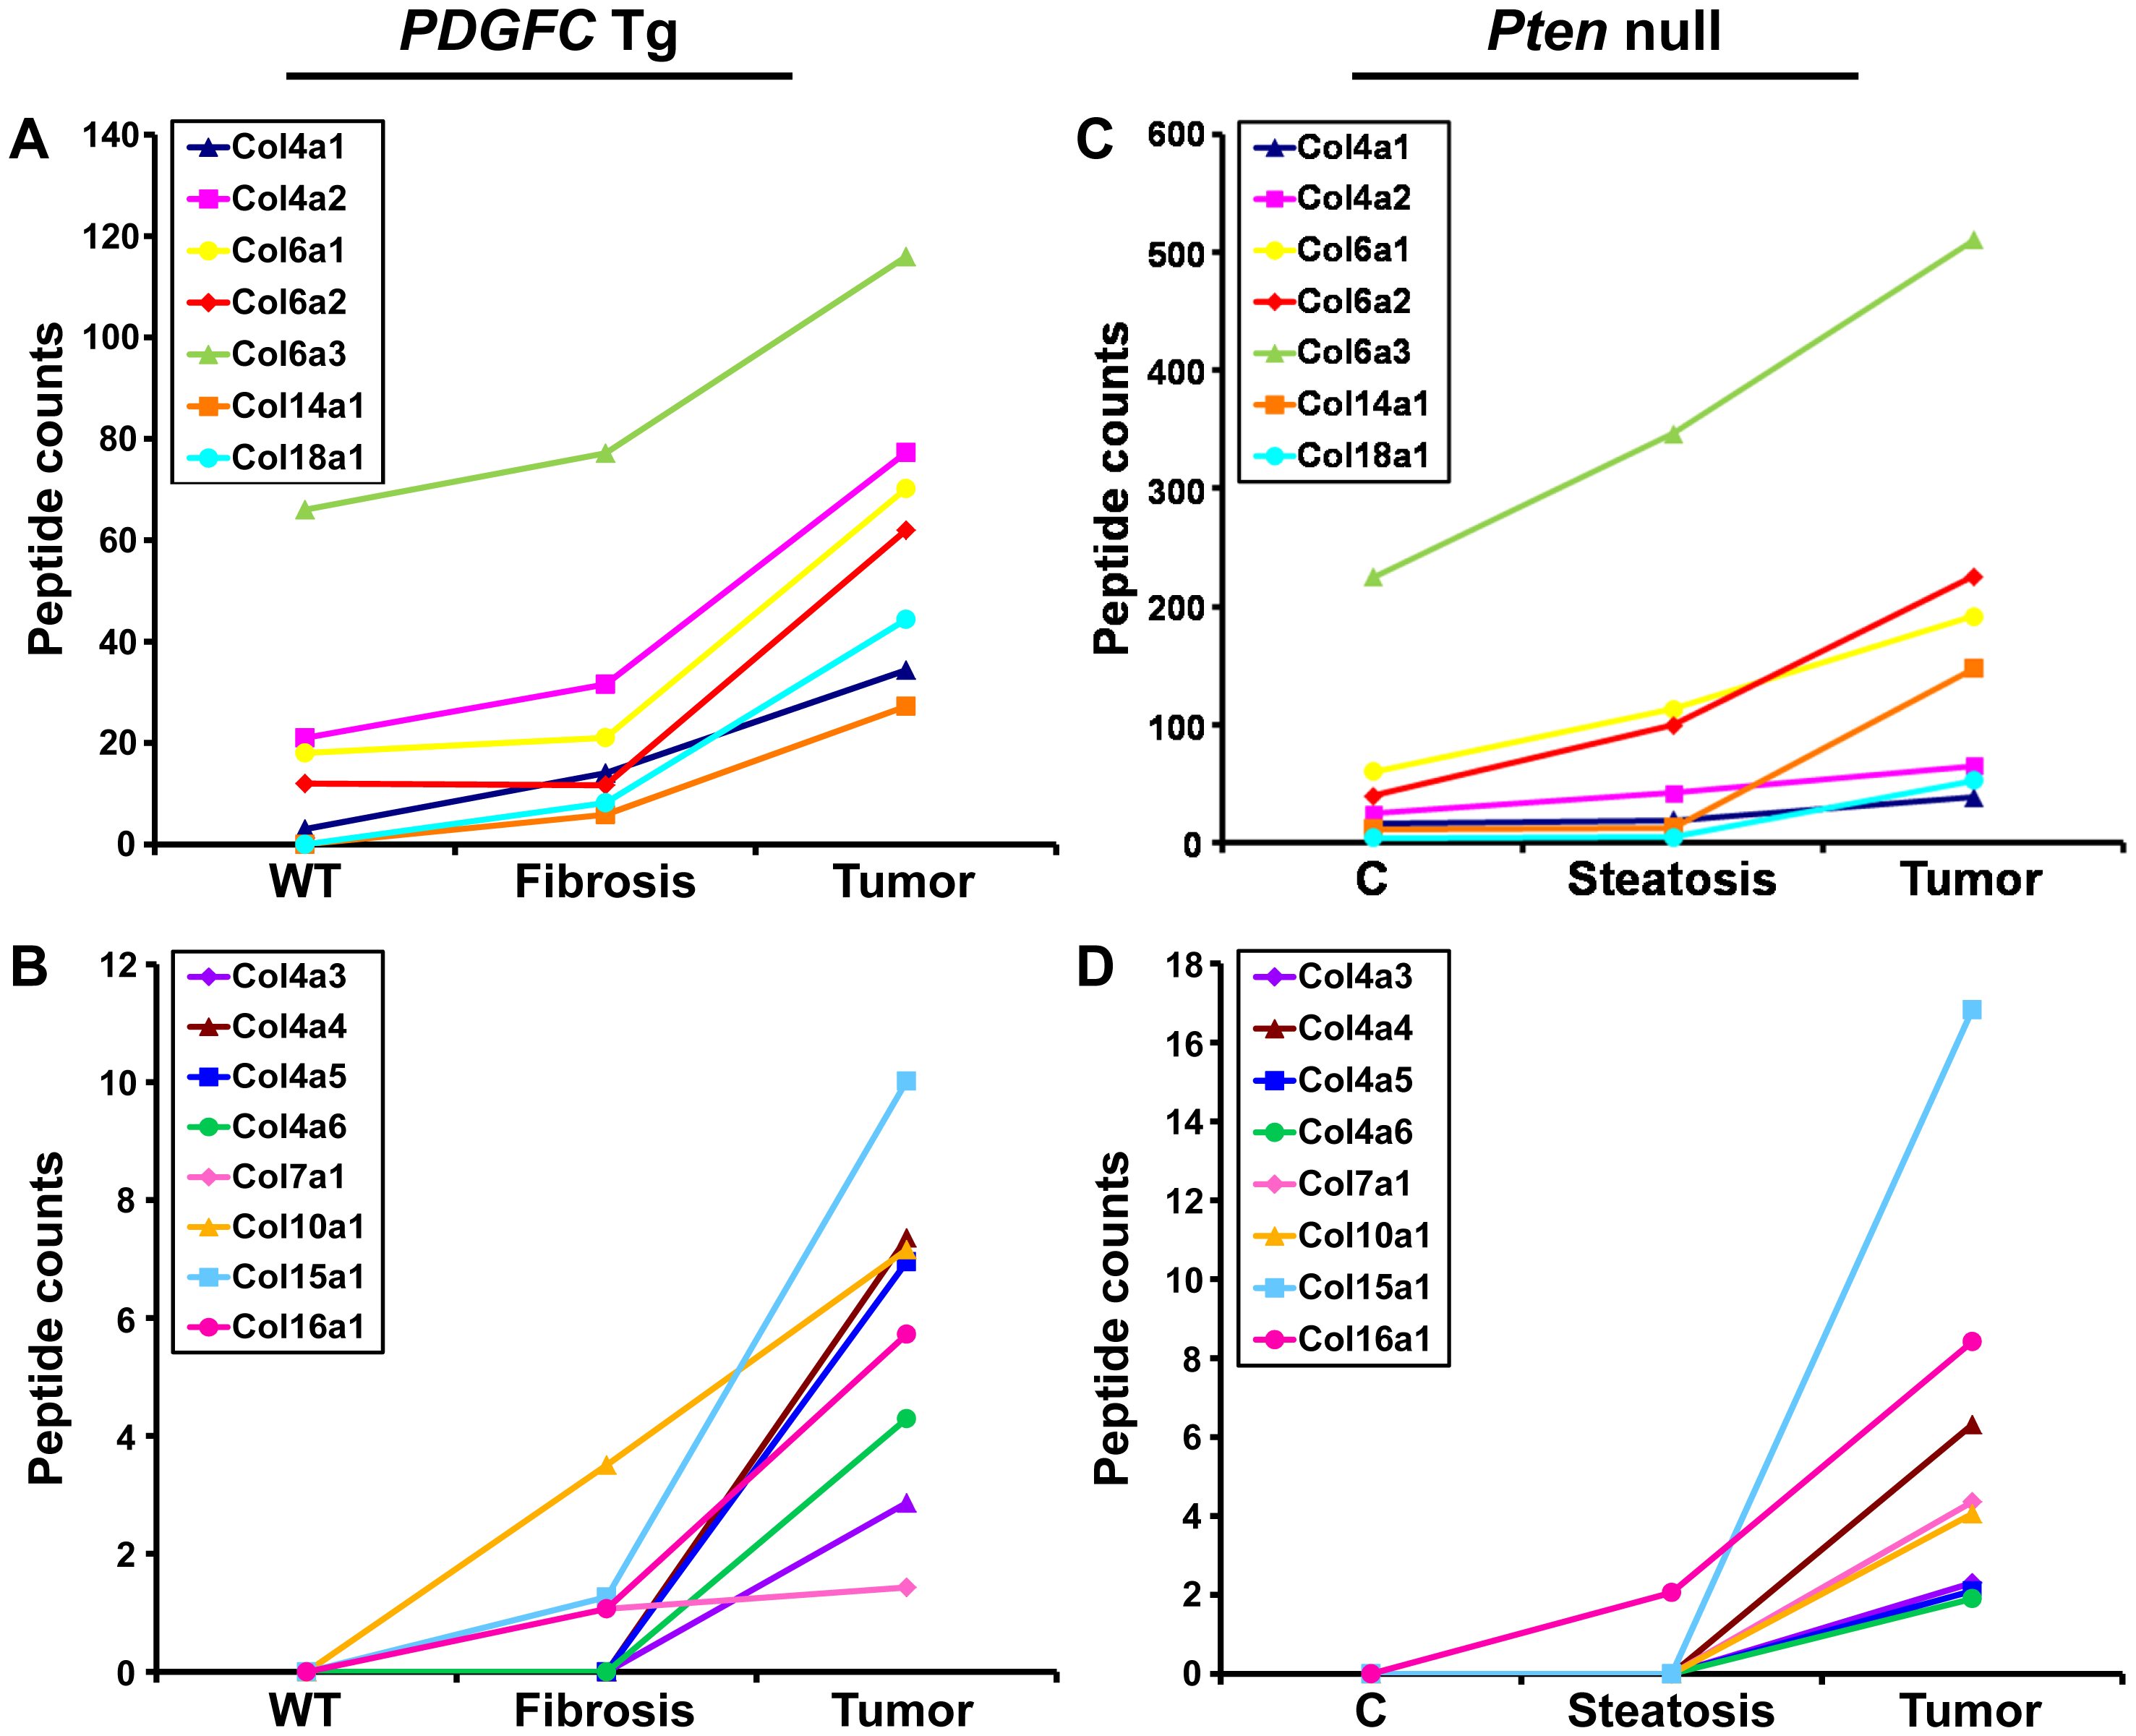 Collagen proteins up-regulated in <i>PDGFC</i> Tg and <i>Pten</i> null tumors.